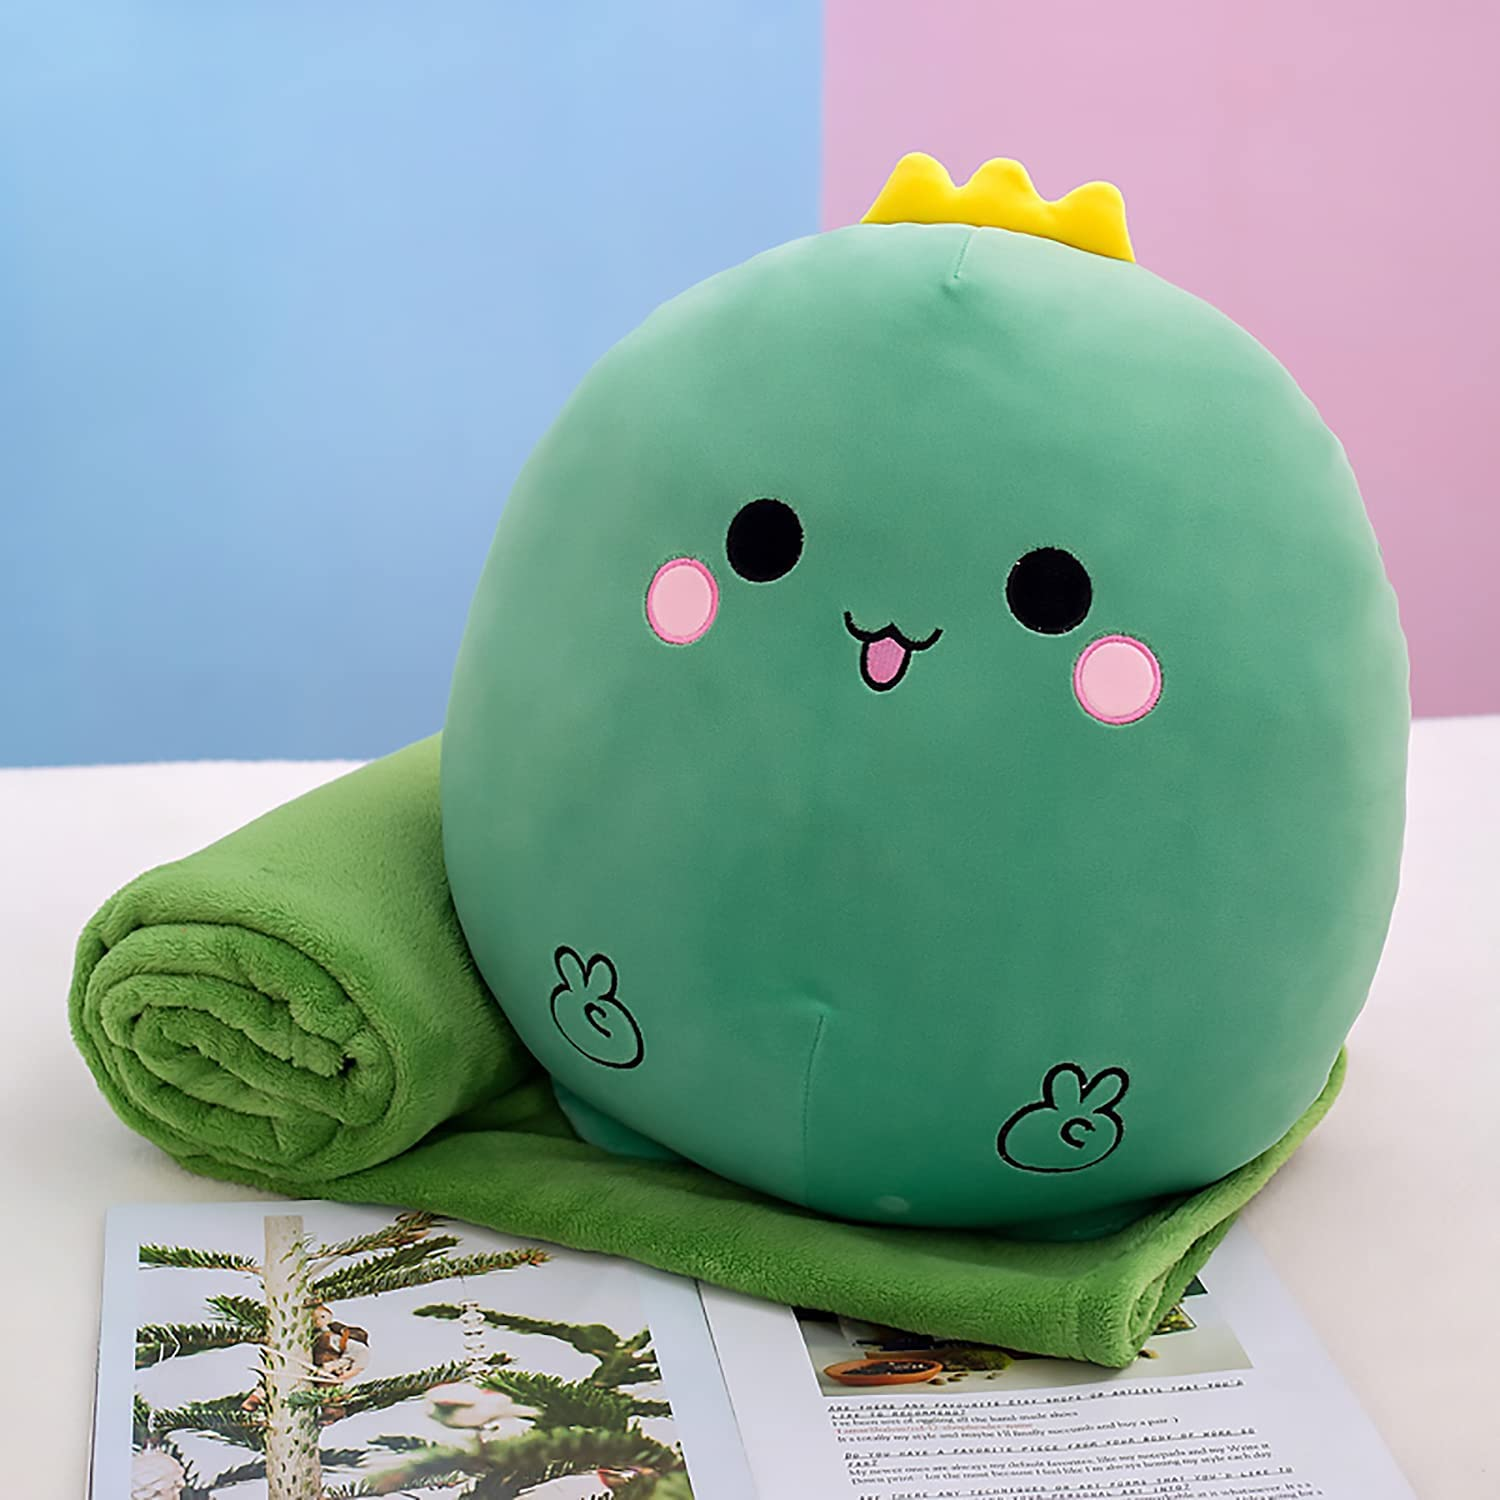 Cute Dinosaur Plush Ranking TOP15 Toy Pillow 40àGreen Flannel Blanket Discount mail order with